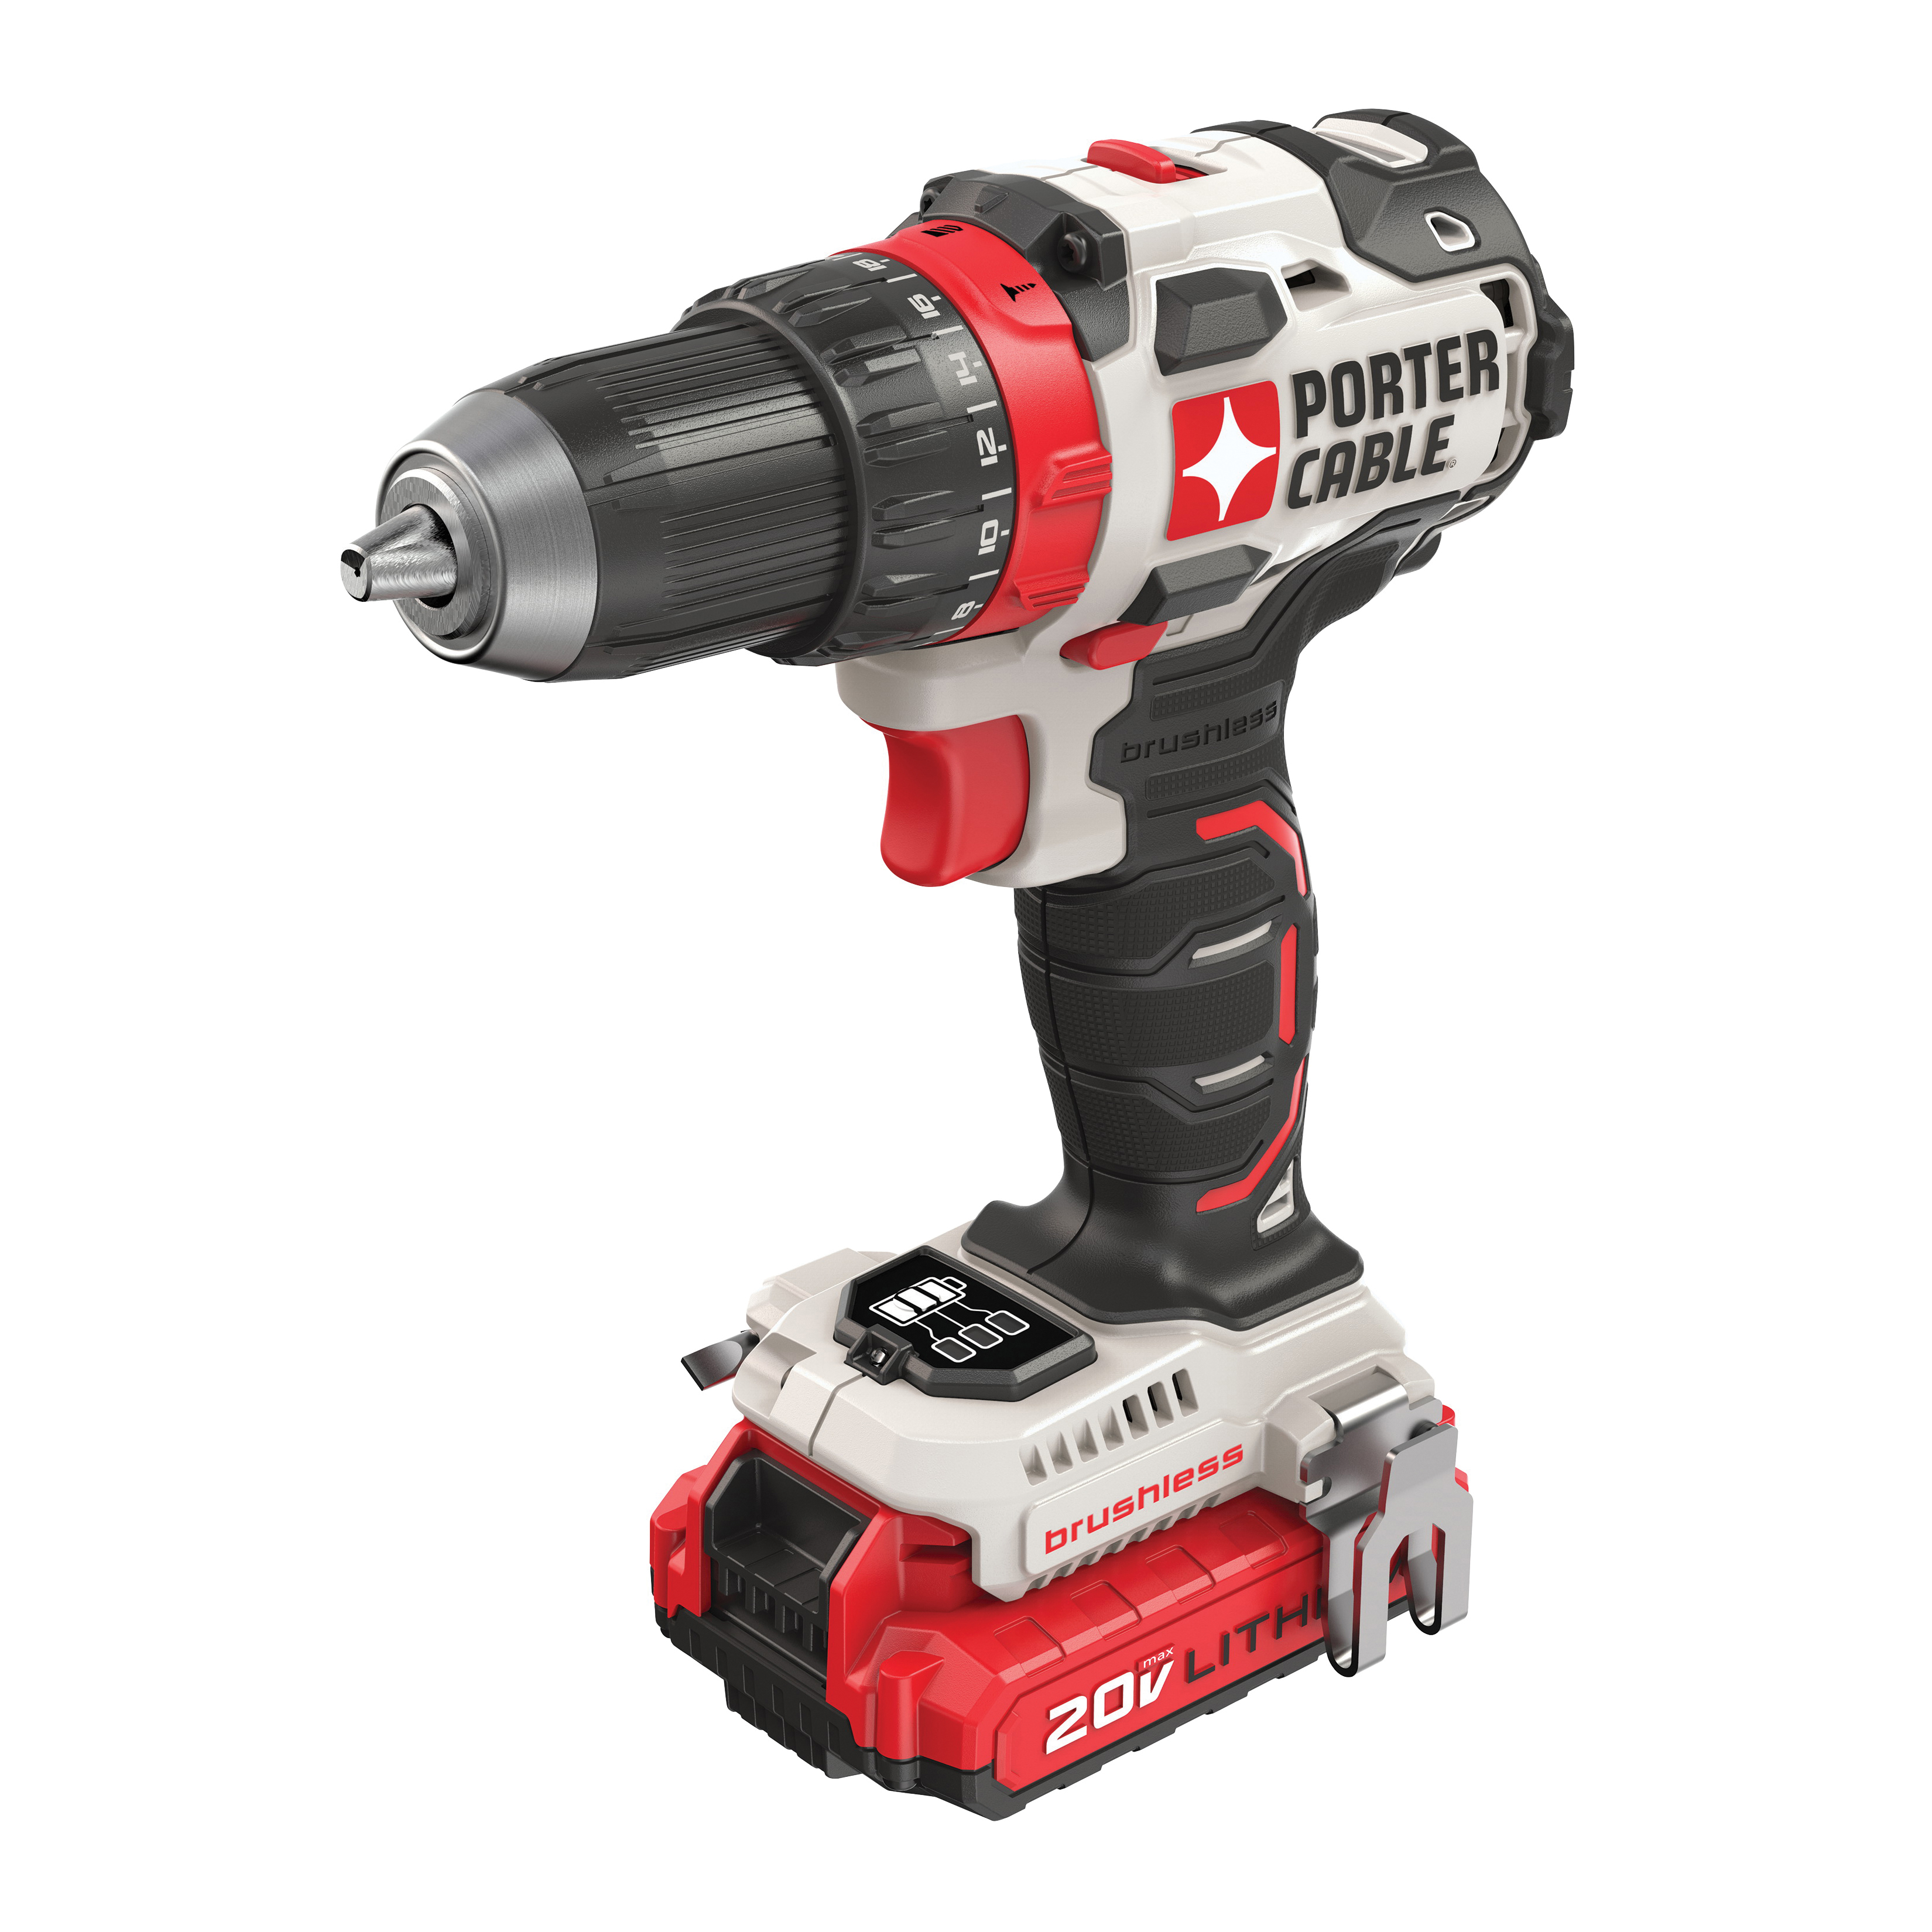 Picture of PORTER-CABLE PCCK607LB Drill/Driver Kit, Kit, 20 V Battery, 1/2 in Chuck, Ratcheting Chuck, Battery Included: Yes